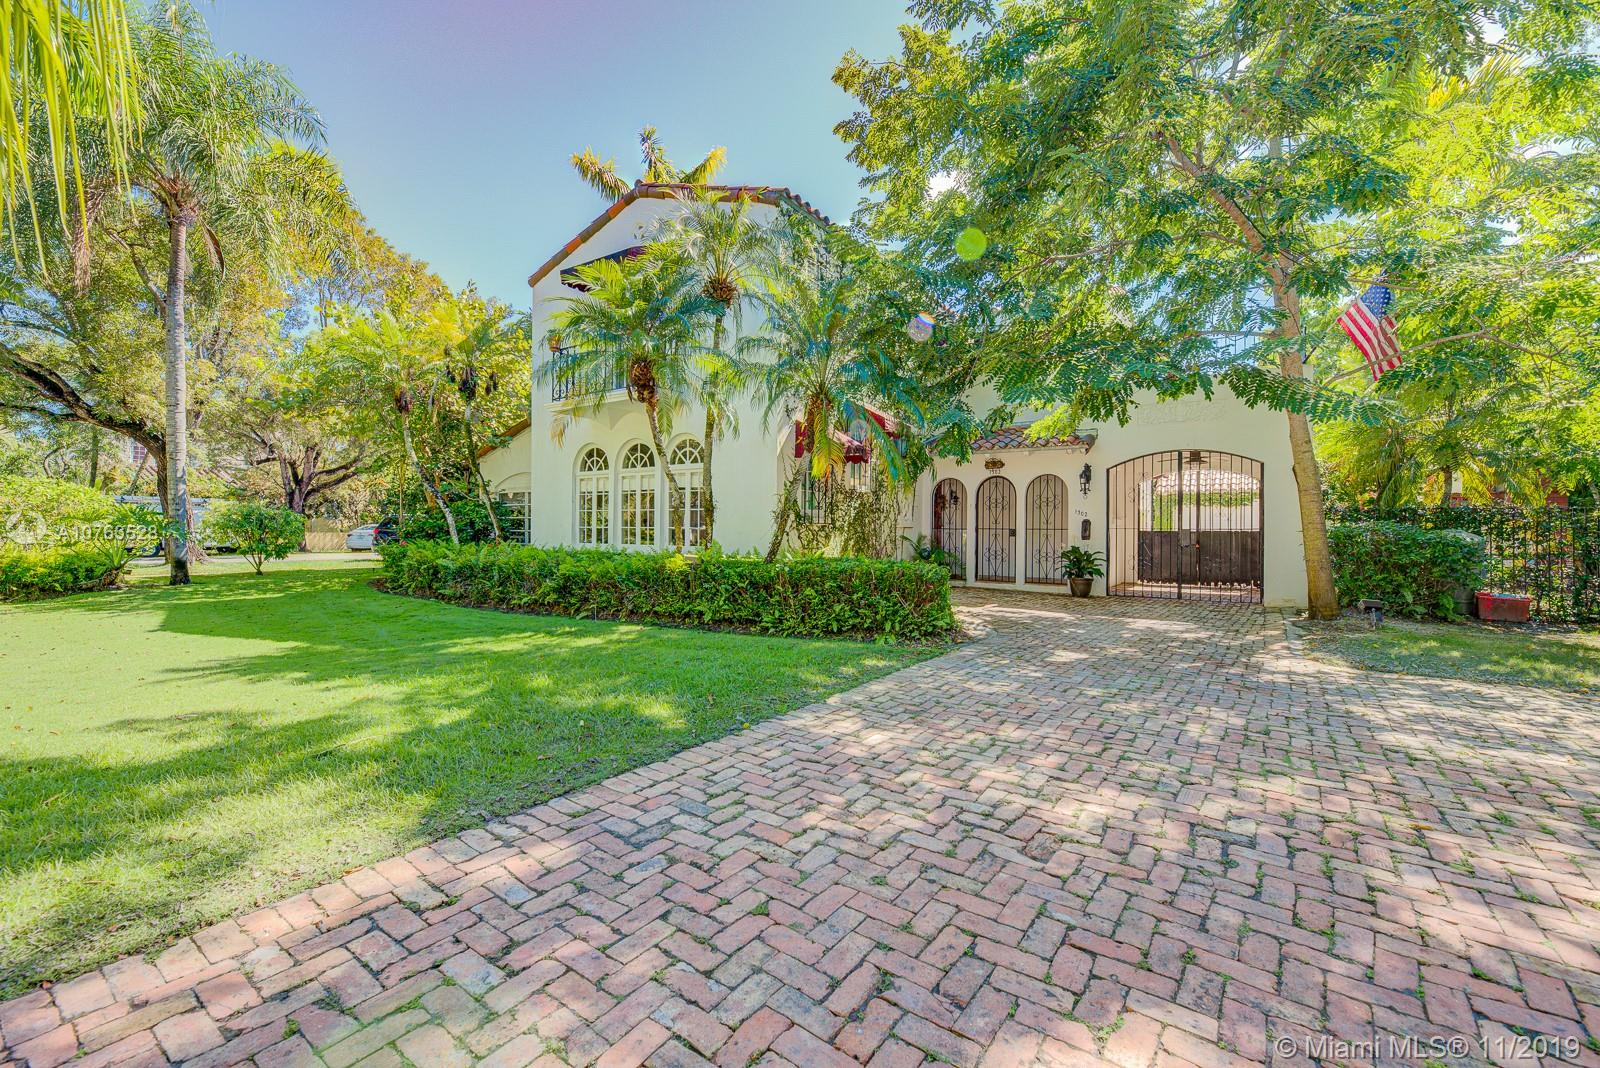 Opportunity to purchase a stunning landmark home on a14,505SF corner lot. Located on one of the most prestigious streets in Coral Gables, this historical residence features original finishes from the 1930s. Such as,immaculate terra-cotta and Florida pine floors, charming spanish tiles on the stairs,& stained glass windows. 1st floorhas a powder room, 2nd floor has 3 bedrooms and 2 full baths. 1/1 guest quarters next to 2 car garage.The tastefully upgraded kitchen is equippedwith Miele appliances:gas cook-top,2 wall ovens,warmingtray,  & sub-zero refrigerator.The kitchen opens up to the formal dining room overlooking the pool. This home has the perfect combination of charm and functional upgrades.